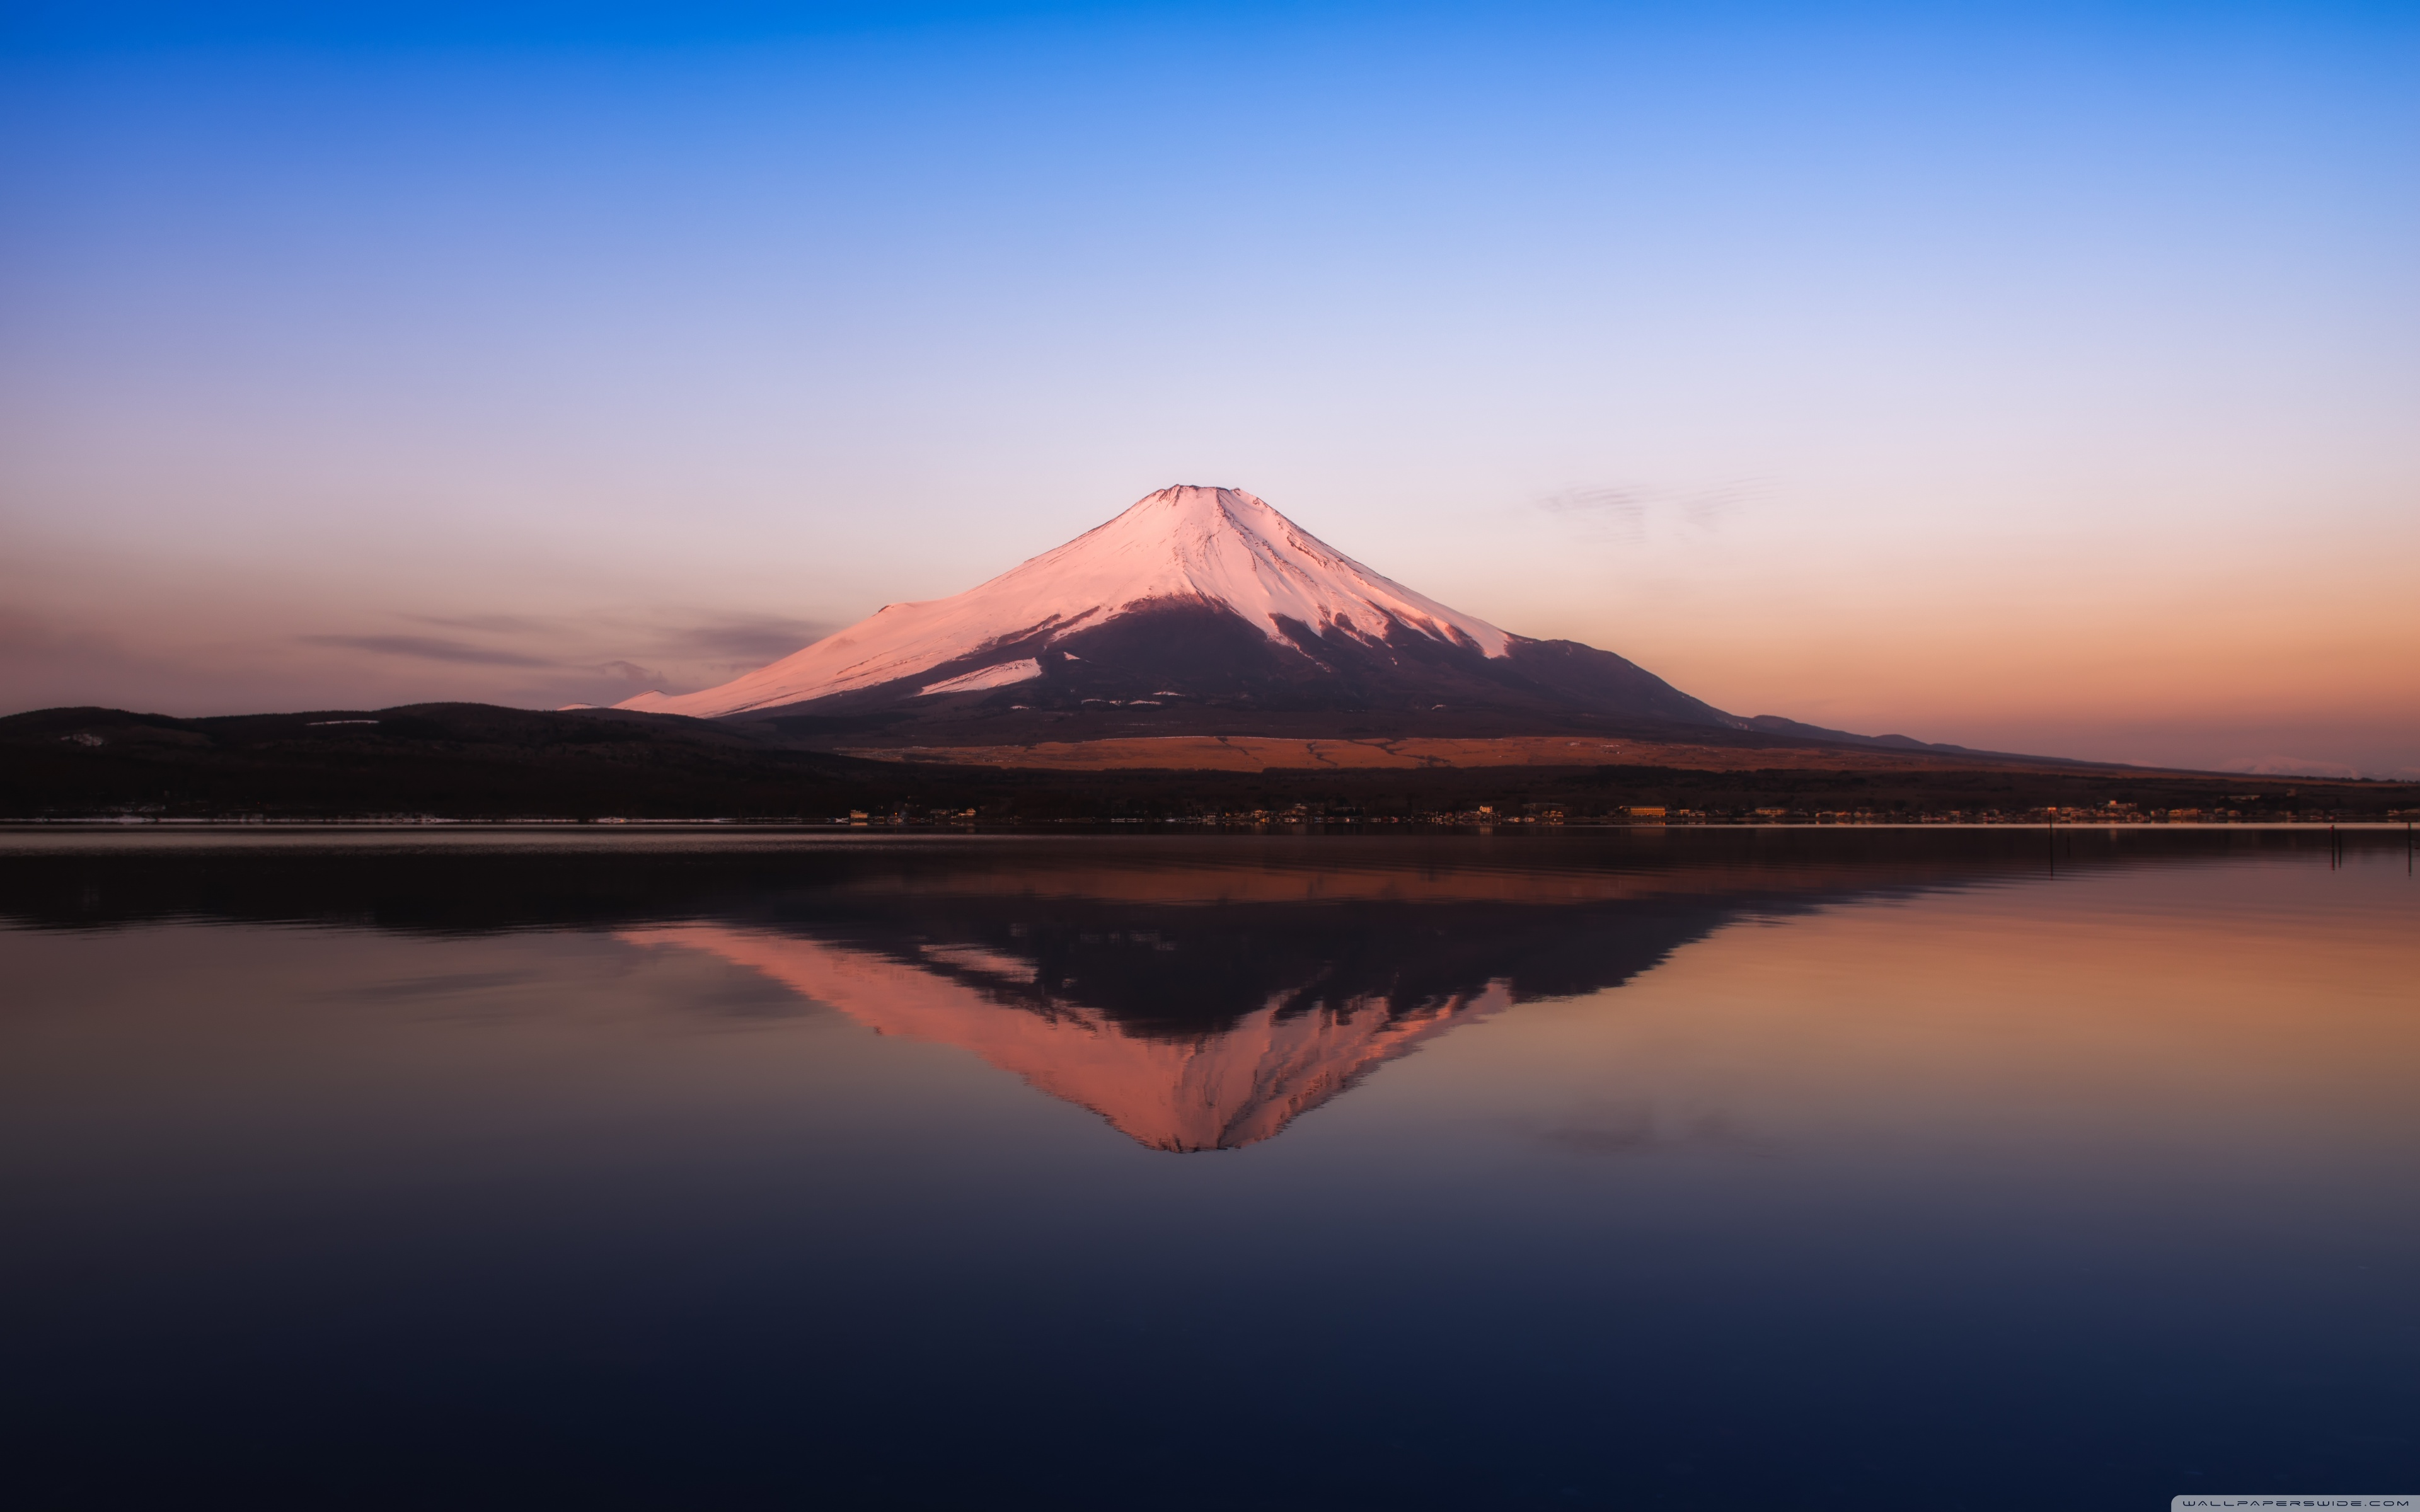 Mount Fuji Wallpapers and Background Images   stmednet 3840x2400